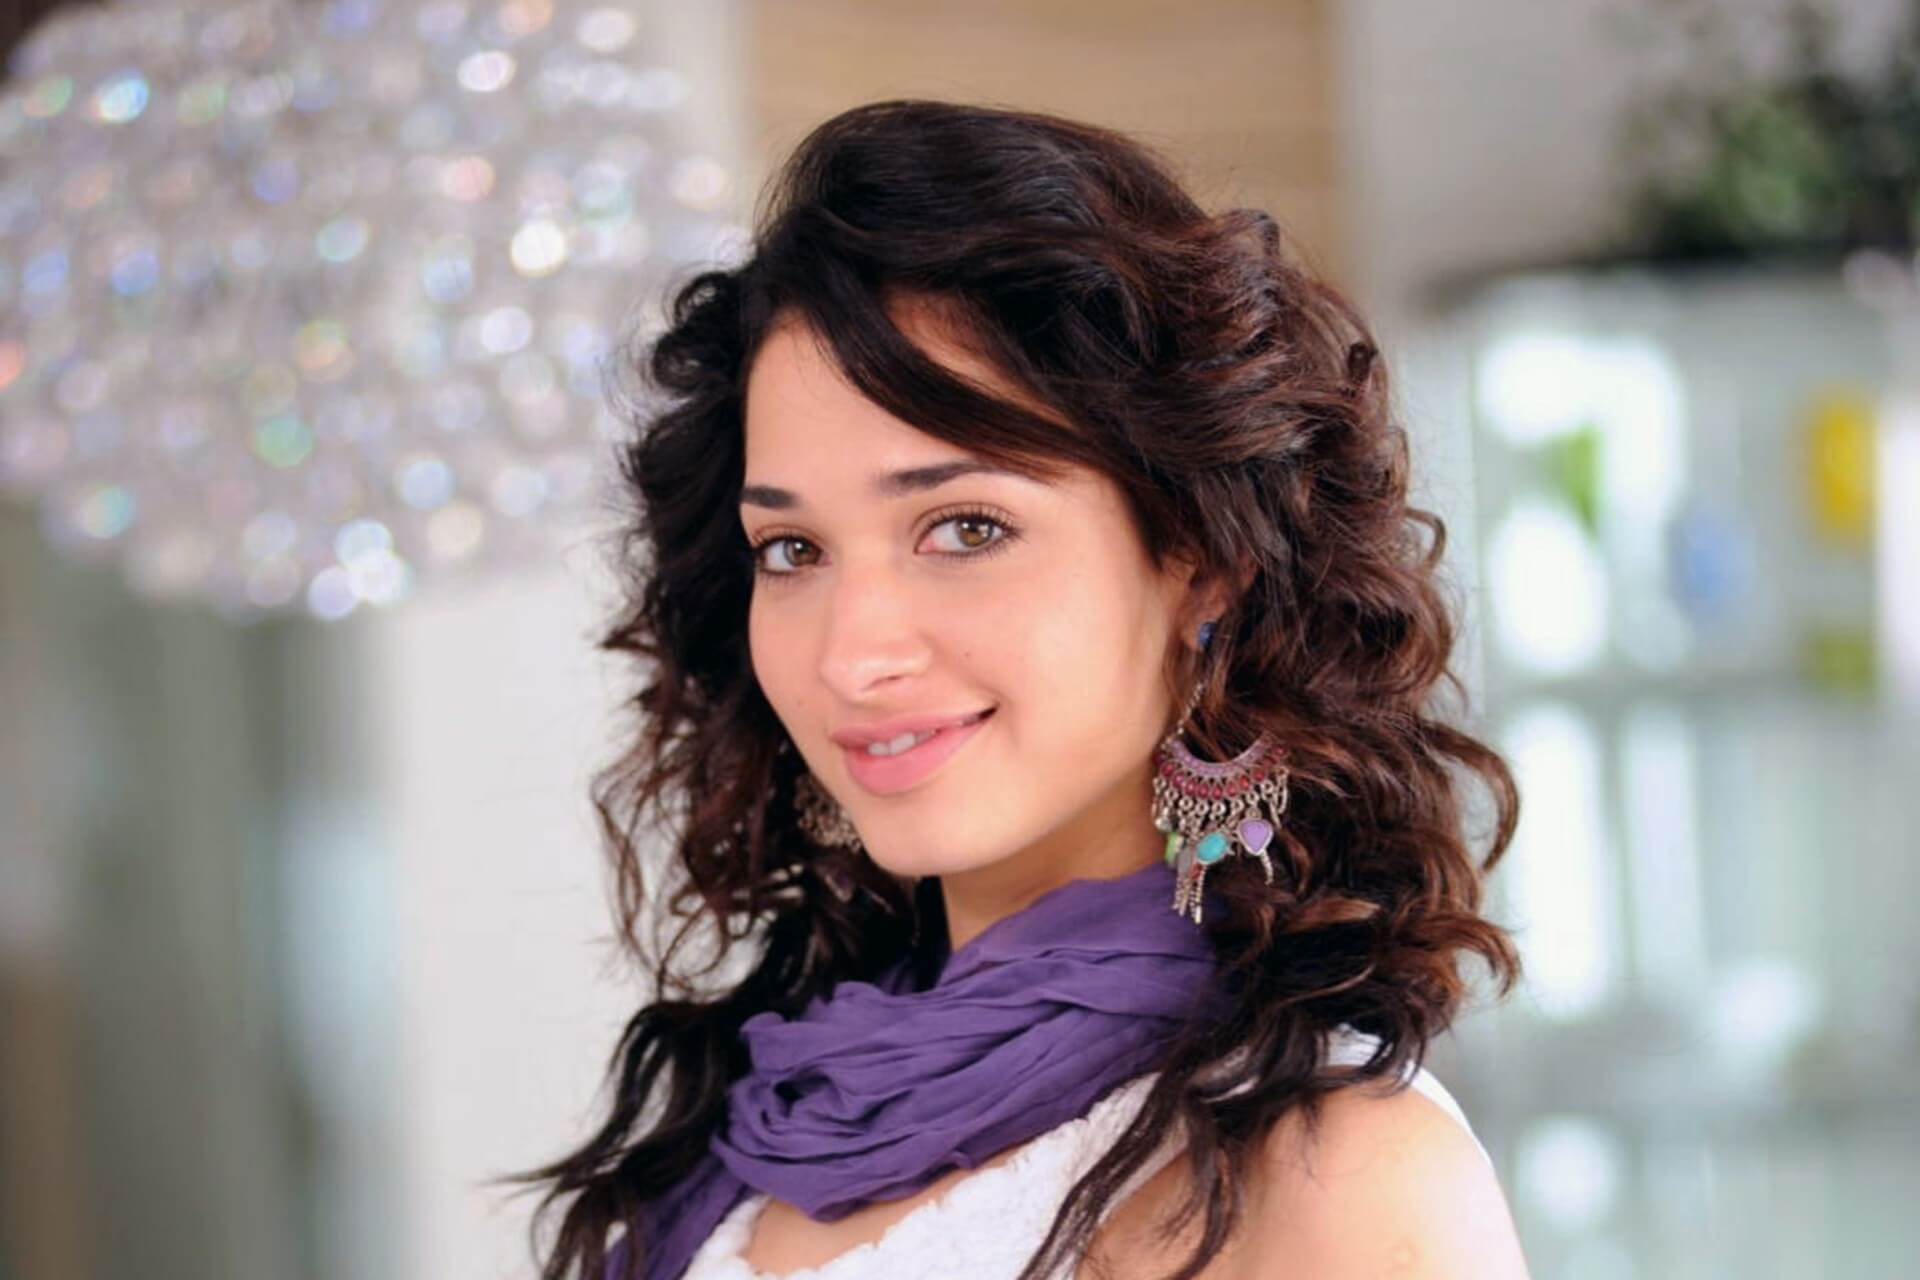 Tamannaah Bhatia Photos(images), Height, Biography, Movies, Date Of Birth, House, Details, Marriage, Boyfriend, Net Worth, Education, Instagram, Facebook, Twitter, Wiki, Imdb, Youtube (68)